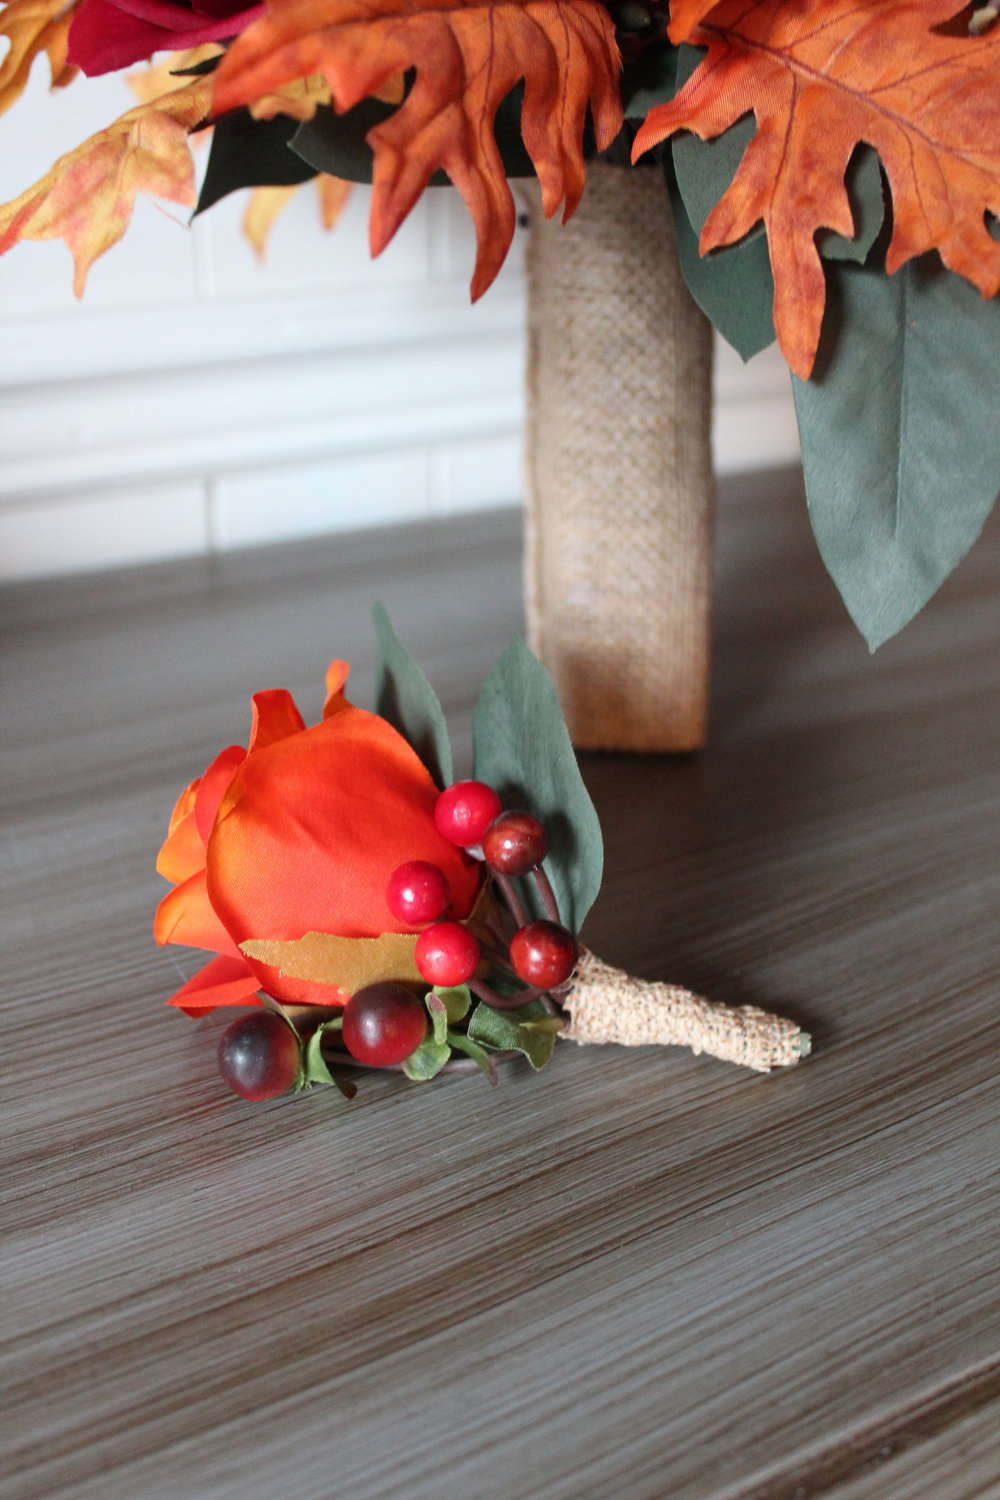 We added burlap to both arrangements for that perfect rustic touch.